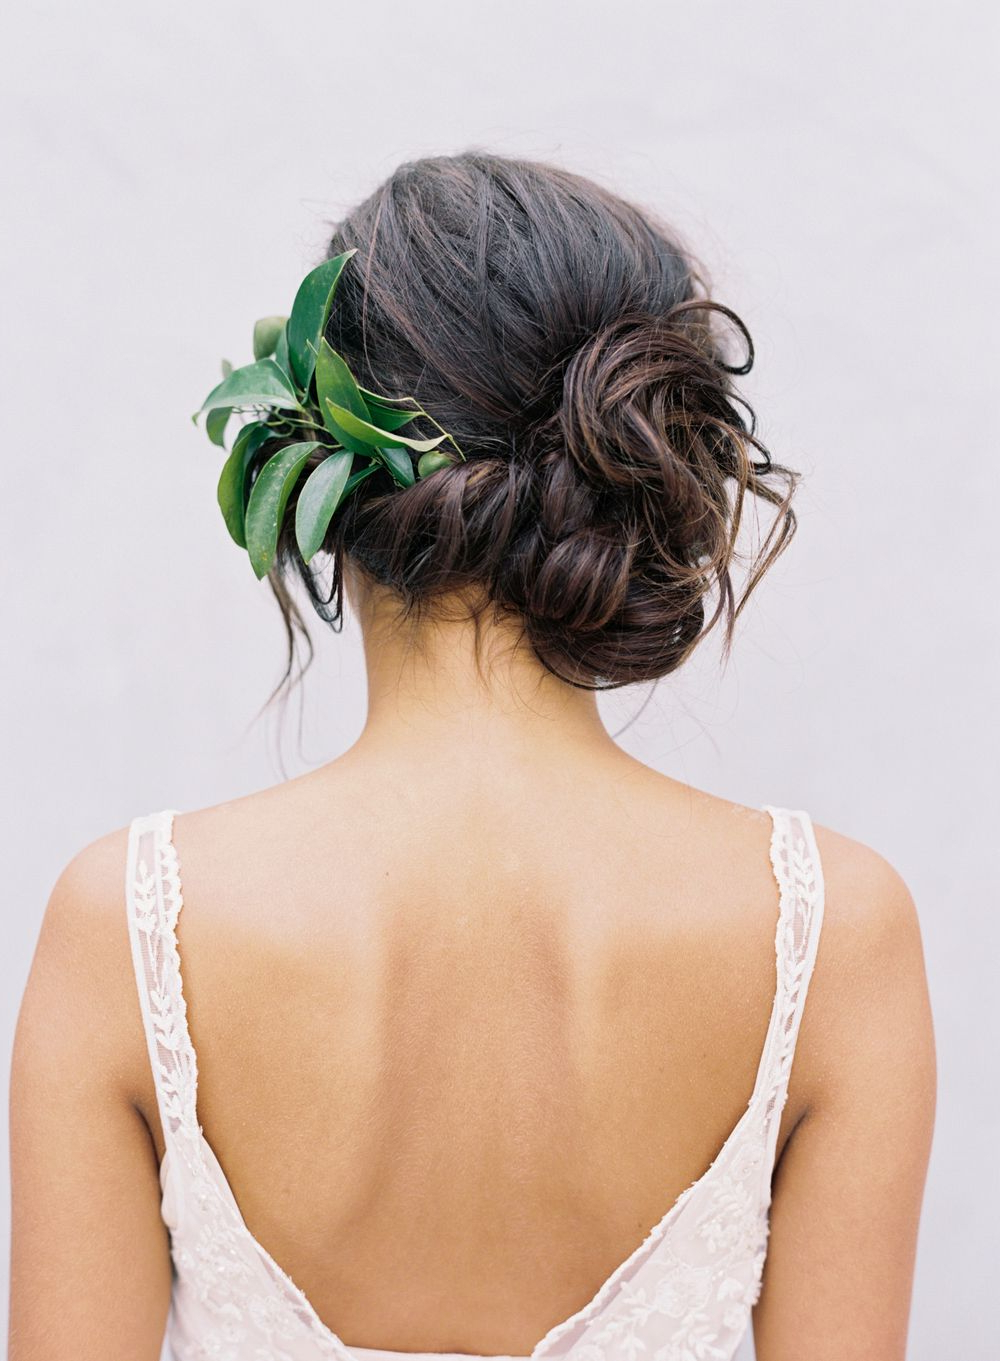 A Classic Wedding Updo, Loose Side Bun, Romantic Side Swept Updo Inside Favorite Side Bun Prom Hairstyles With Black Feathers (Gallery 12 of 20)